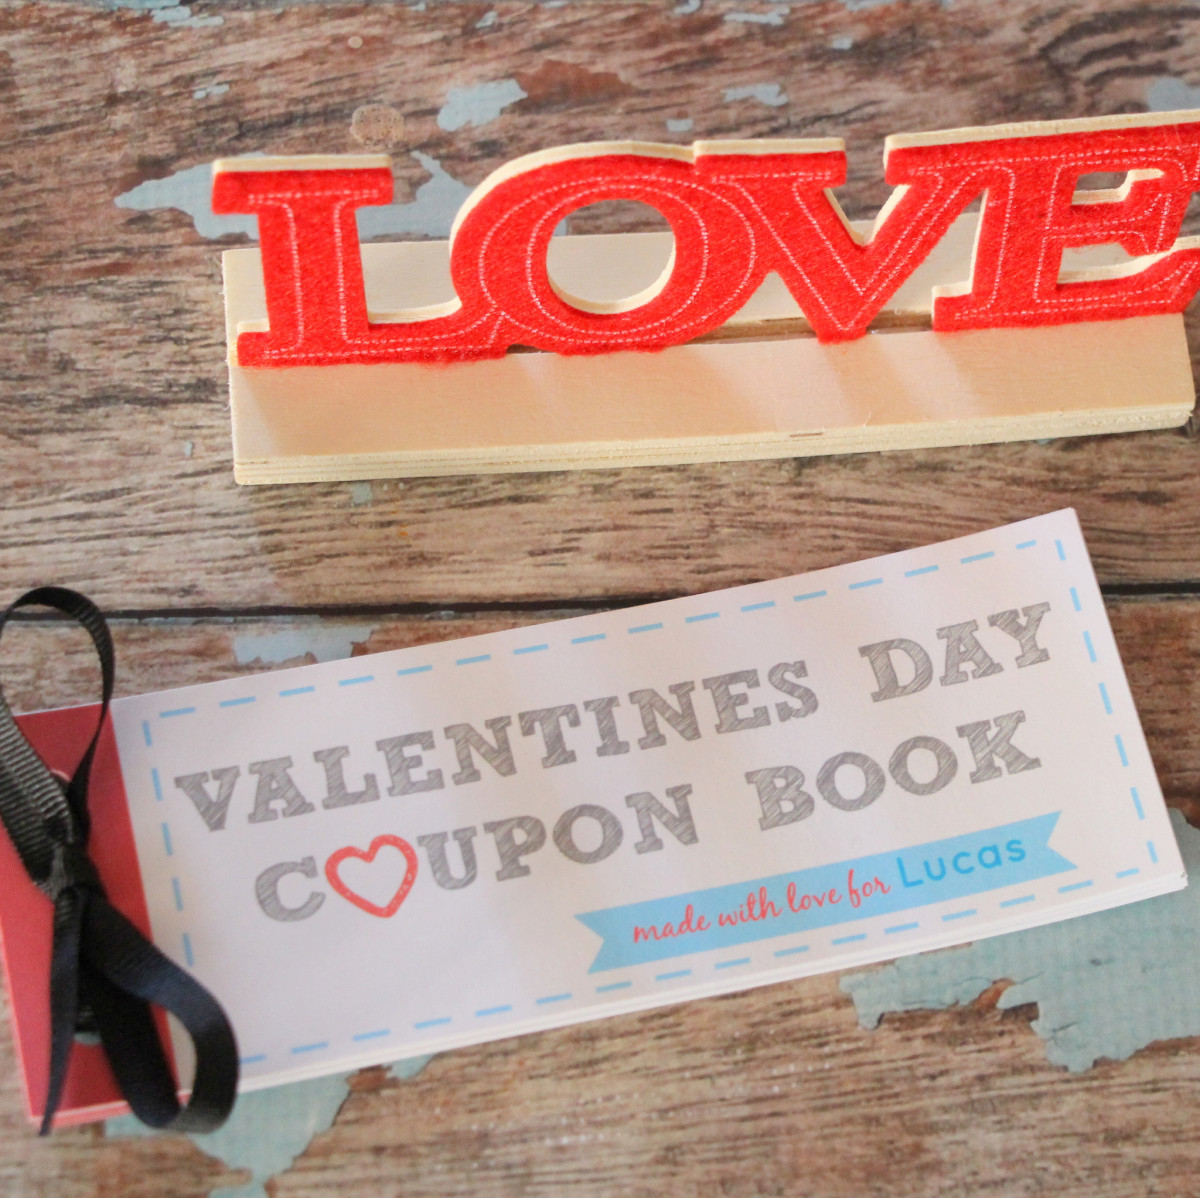 Homemade Coupon Book Gift Ideas for Any Holiday or Occasion